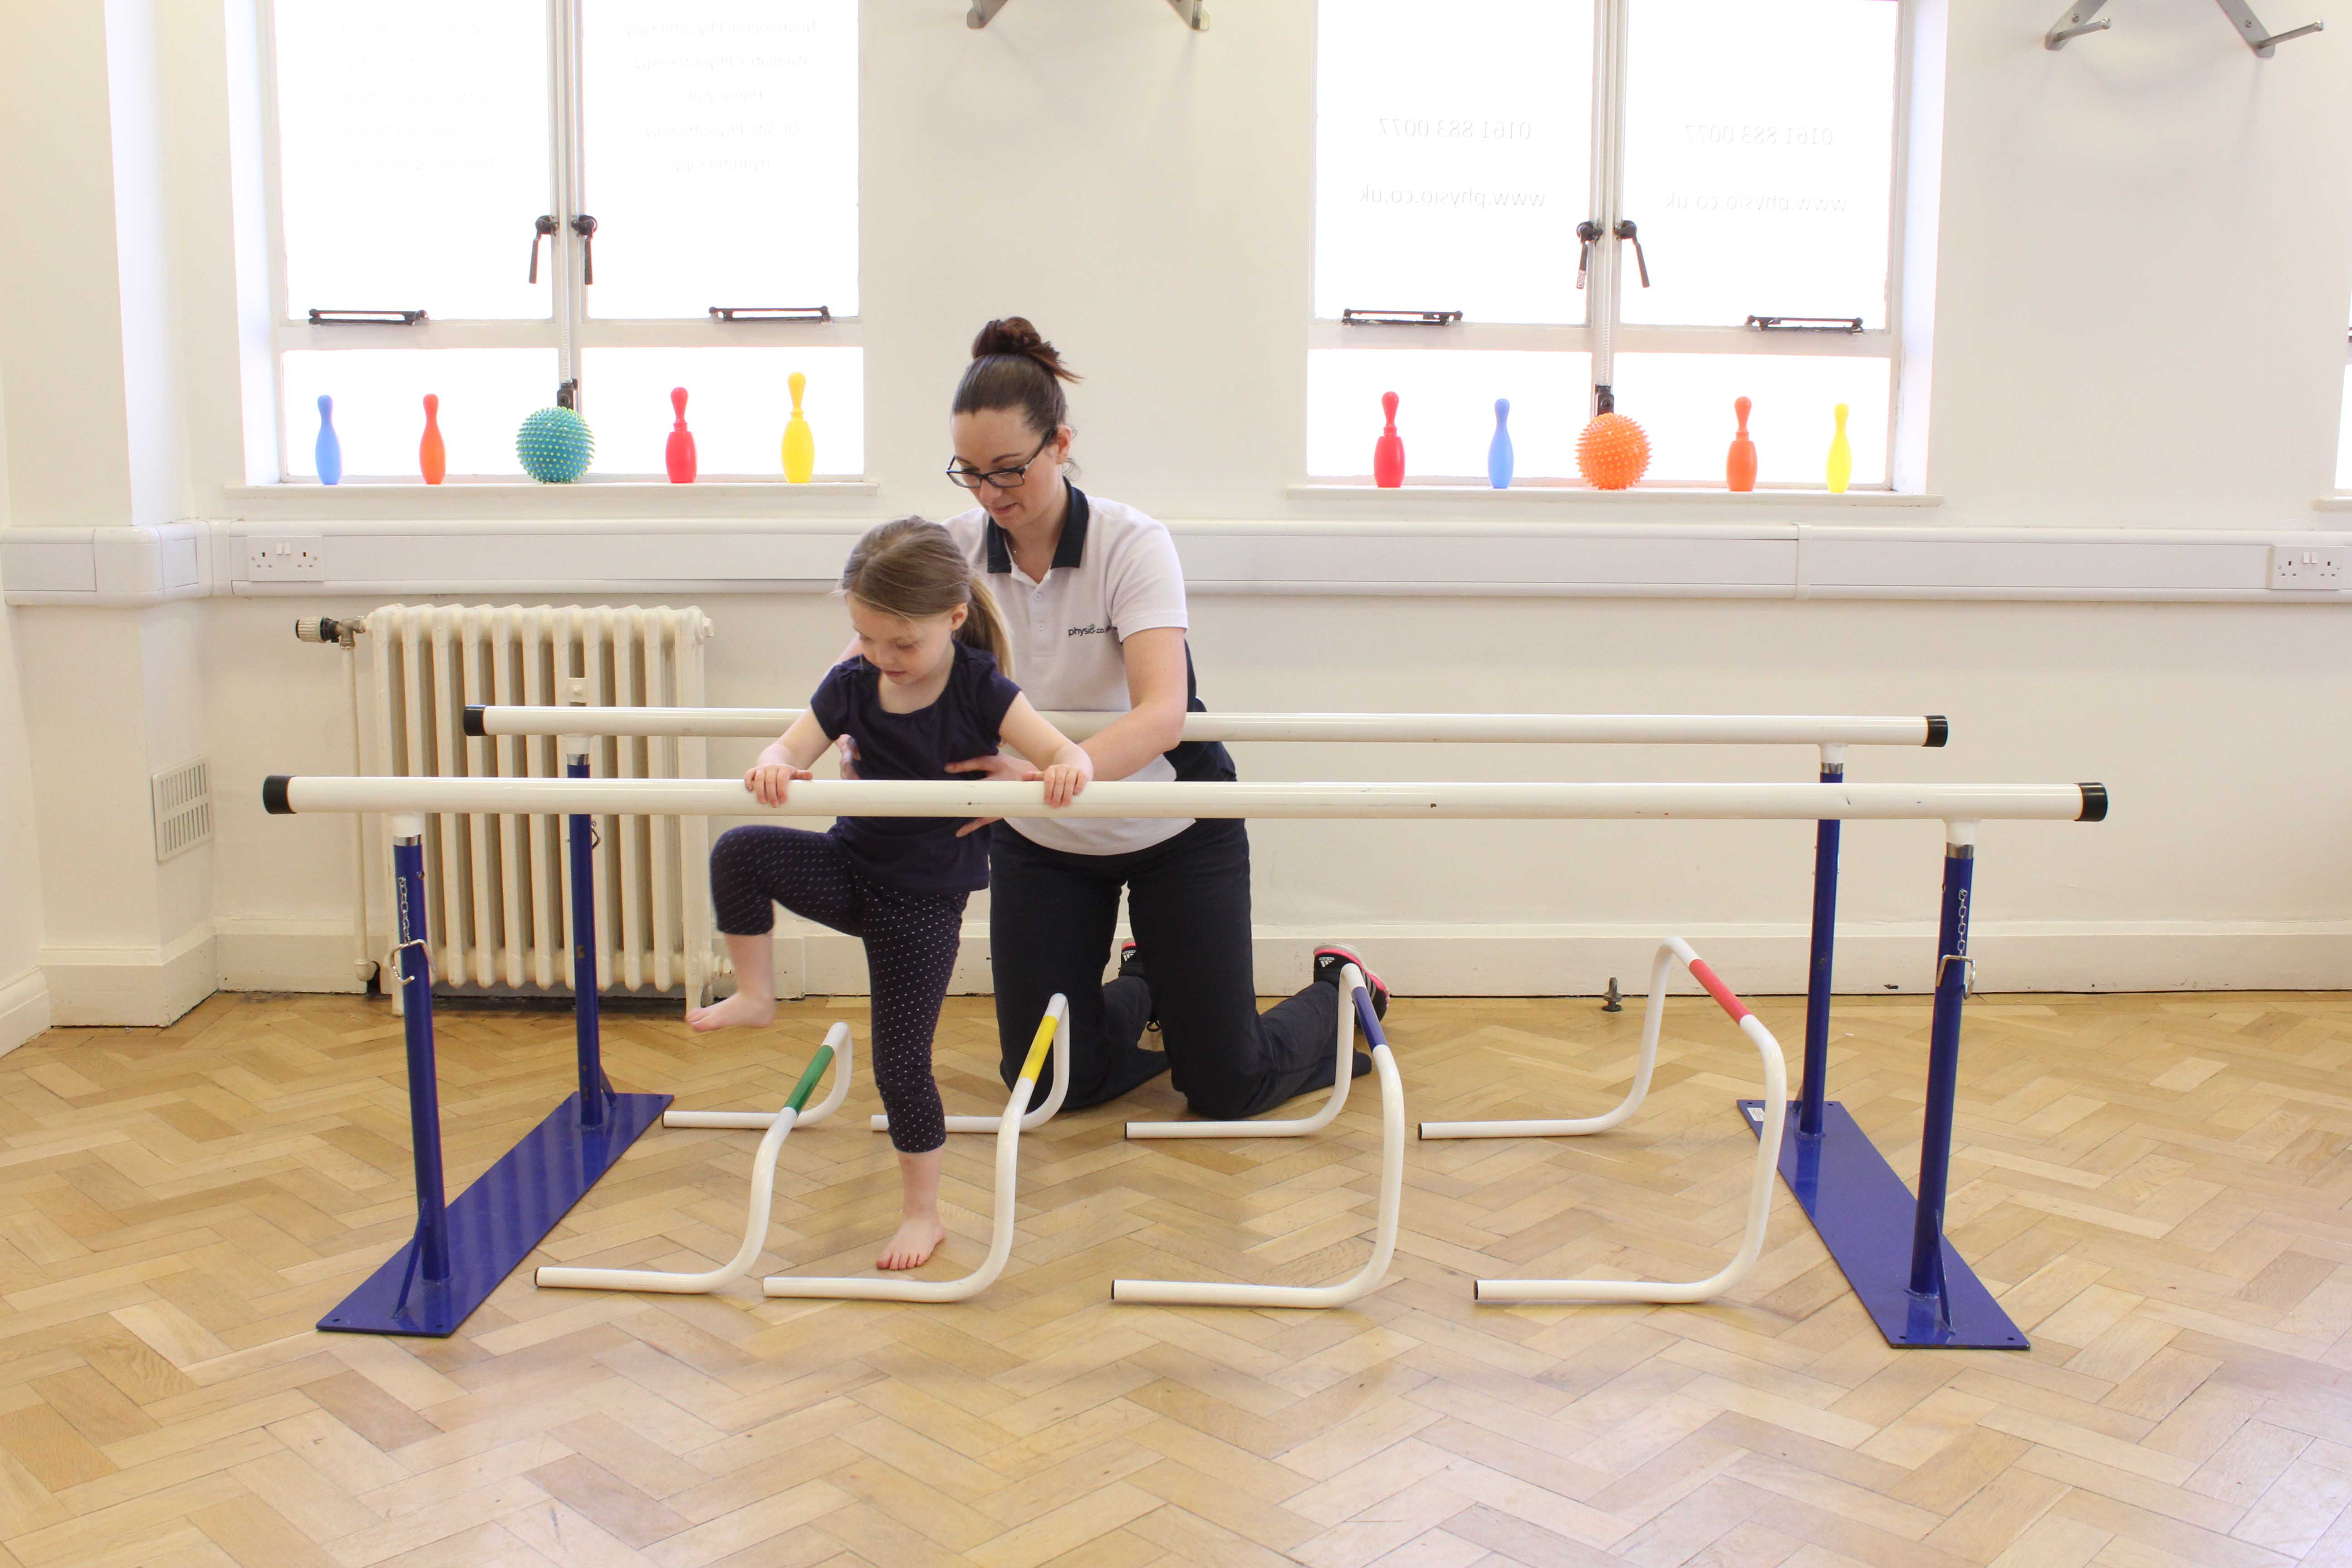 Physiotherapist assisted mobility exercises between the parallel bars